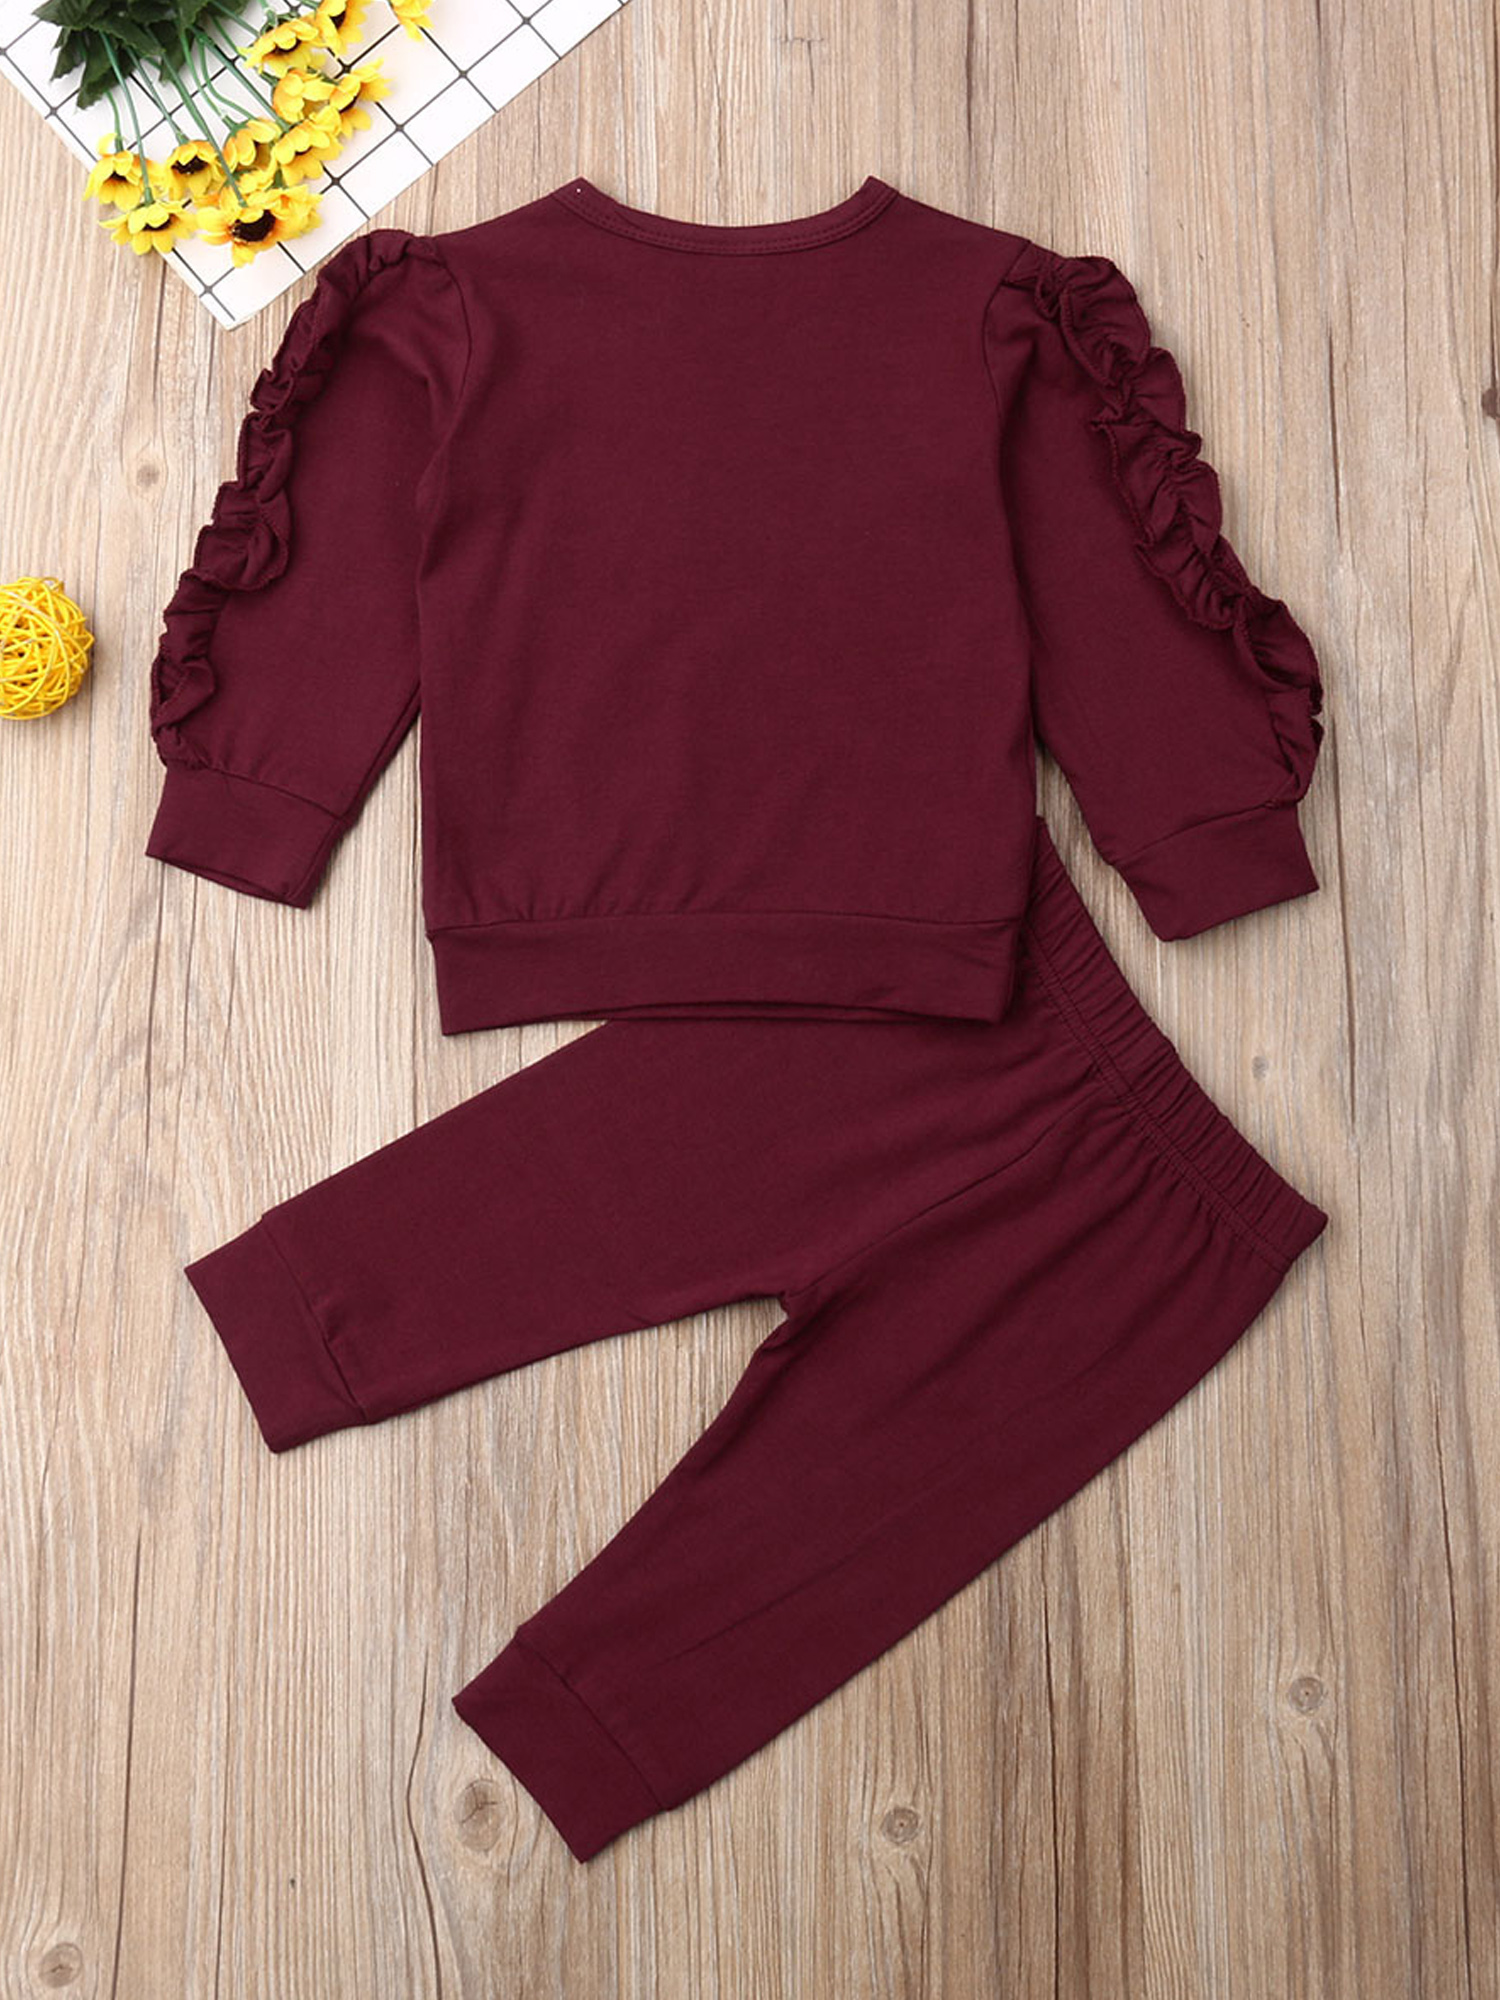 for 1-6 Years Old Girls Clothes Set Toddler Baby Long Sleeve Ruffles Solid Pullover Tops T-Shirt Jeans Pants Outfits Set Clothes Kids Clothing Set Summer Set Comfy Cotton Elastic Loungewear 2pcs